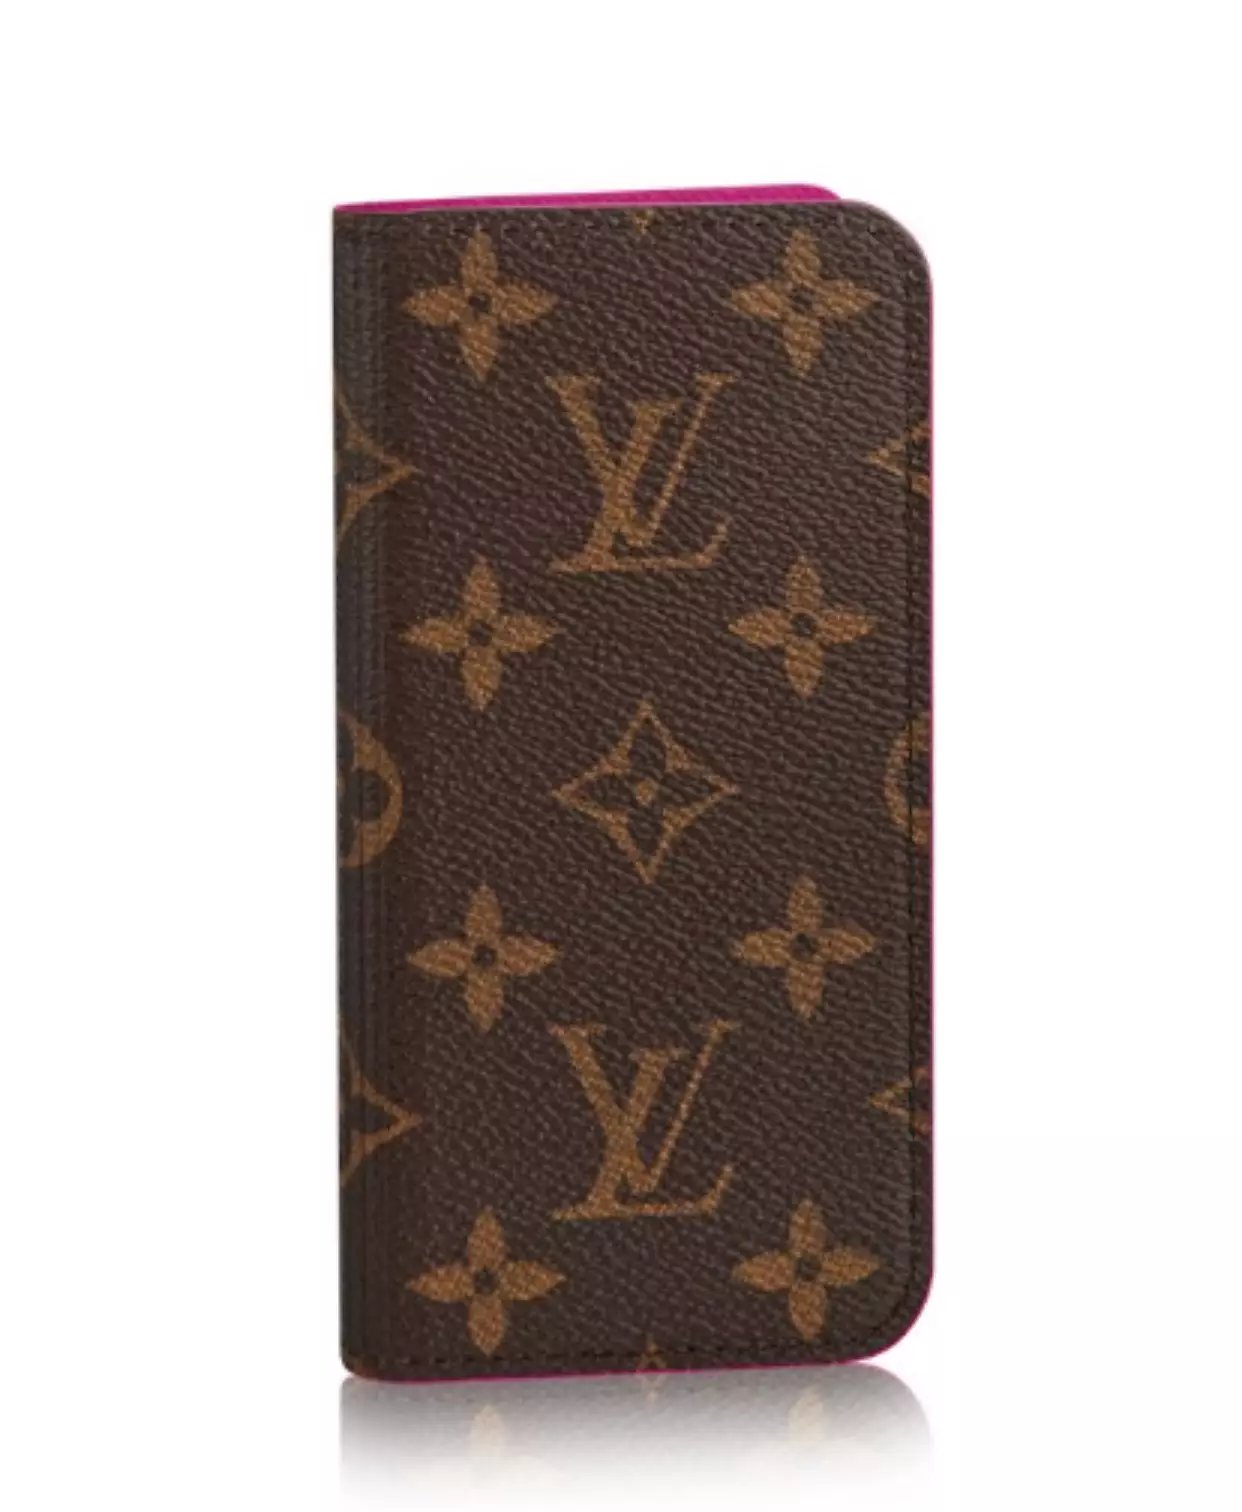 iphone hülle online shop iphone schutzhülle selbst gestalten Louis Vuitton iphone7 hülle cover für handy 7lbst gestalten iphone was7rdichte hülle iphone 7 hülle design iphone 6 großes display iphone 7 apple hülle iphone 6 news aktuell